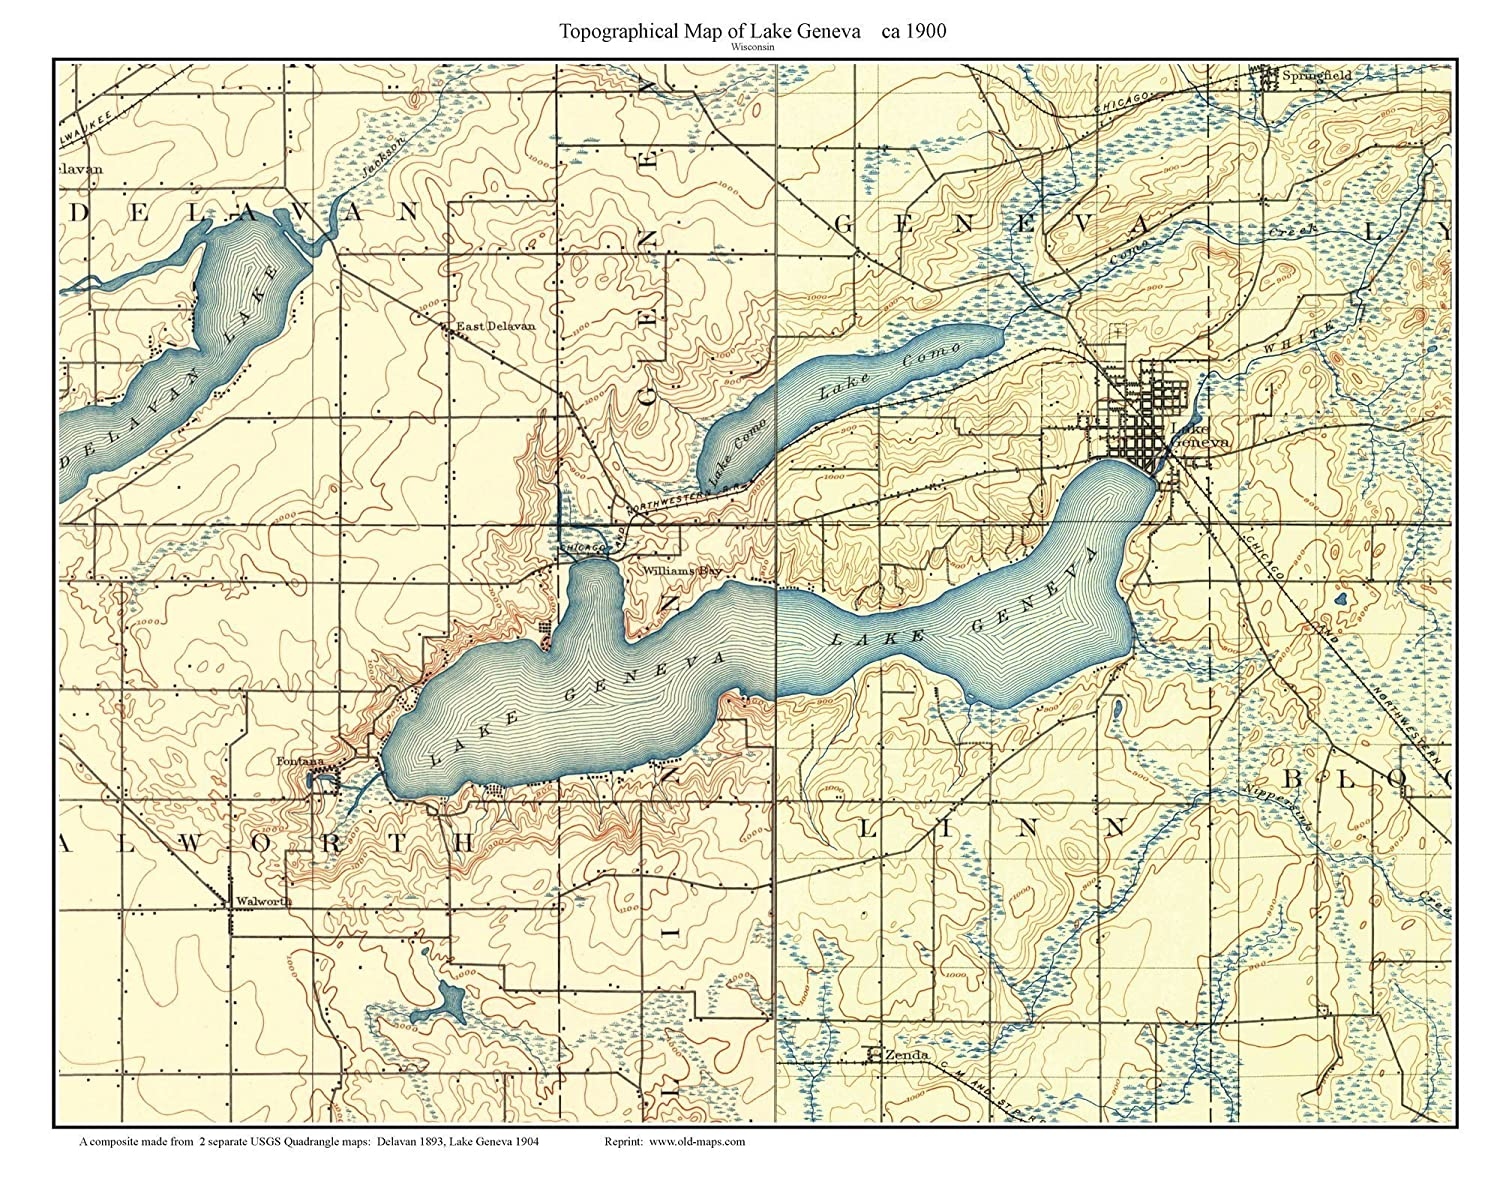 Amazon.com: Lake Geneva 1900 Old Topographic Map USGS Custom ... on map of uranus, map of cold mountain, map of jfk, map of luna, map of the great war, map of brazil, map of greed, map of italy, map of police, map of iran, map of new york, new york, map of barbara, map of 49th parallel, map of life is beautiful, map of wolf, map of gettysburg, map of apocalypse now, map of network, map of zulu,